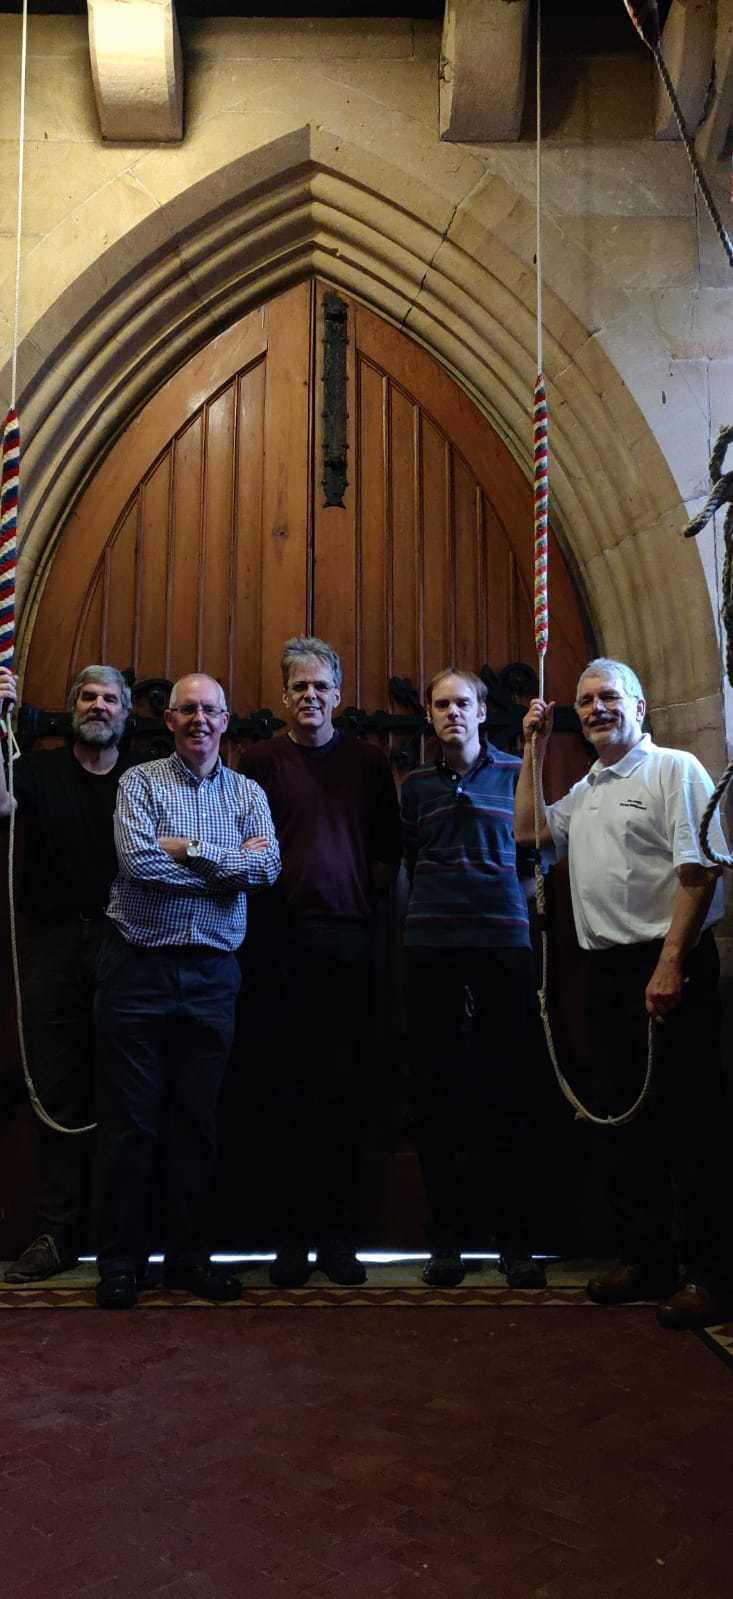 Ringers 1-5 (right to left)